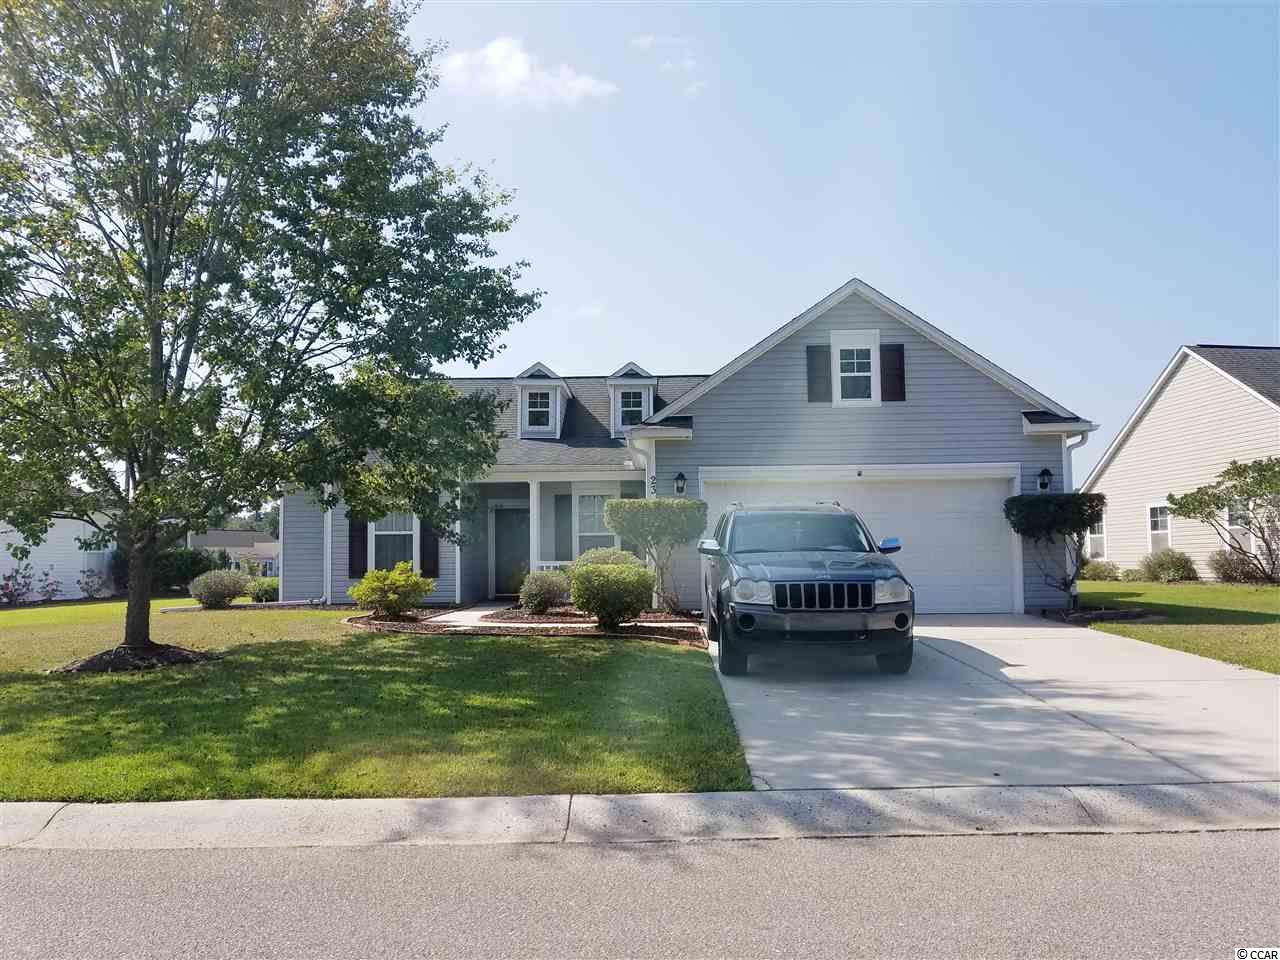 Price reduced! This 3 bedroom 2 bath home boasts a wonderful view of the Lake/Pond, tray ceiling in Master bedroom, NEW stove installed, microwave 2018, Refrigerator 2017, Washer 2016, Dryer 2015, Dishwasher 2013. Freshly painted 2/05/2020 Family/Great Room features 2 ceiling fans. Home is well maintained and a must see! Over-sized screened in rear patio as well an over-sized rear patio. Home is located in the desirable community of Links Brook which has a huge pool, hot tub, tennis courts, picnic pavilion with bbq's, horse shoe court, Clubhouse with fitness center, pool table, very active community center. Close to Huntington Beach State Park, Brookgreen Gardens, Murrells Inlet Marsh Walk, Restaurants, Shopping, Entertainment, Fishing, Boating, and so much more the area has to offer!